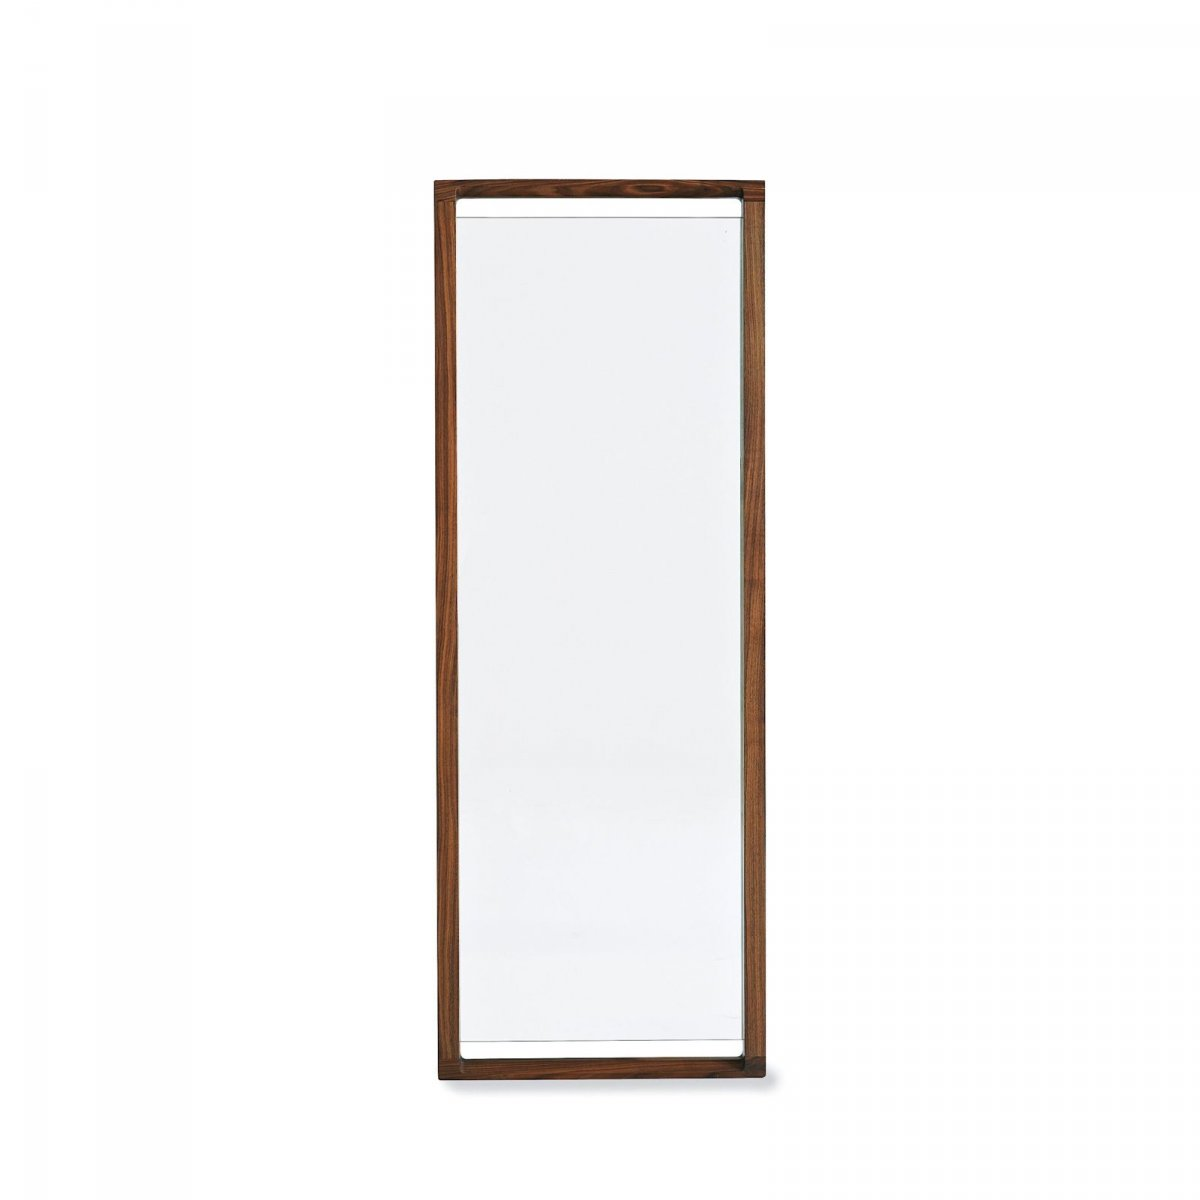 Matera Mirror, walnut.